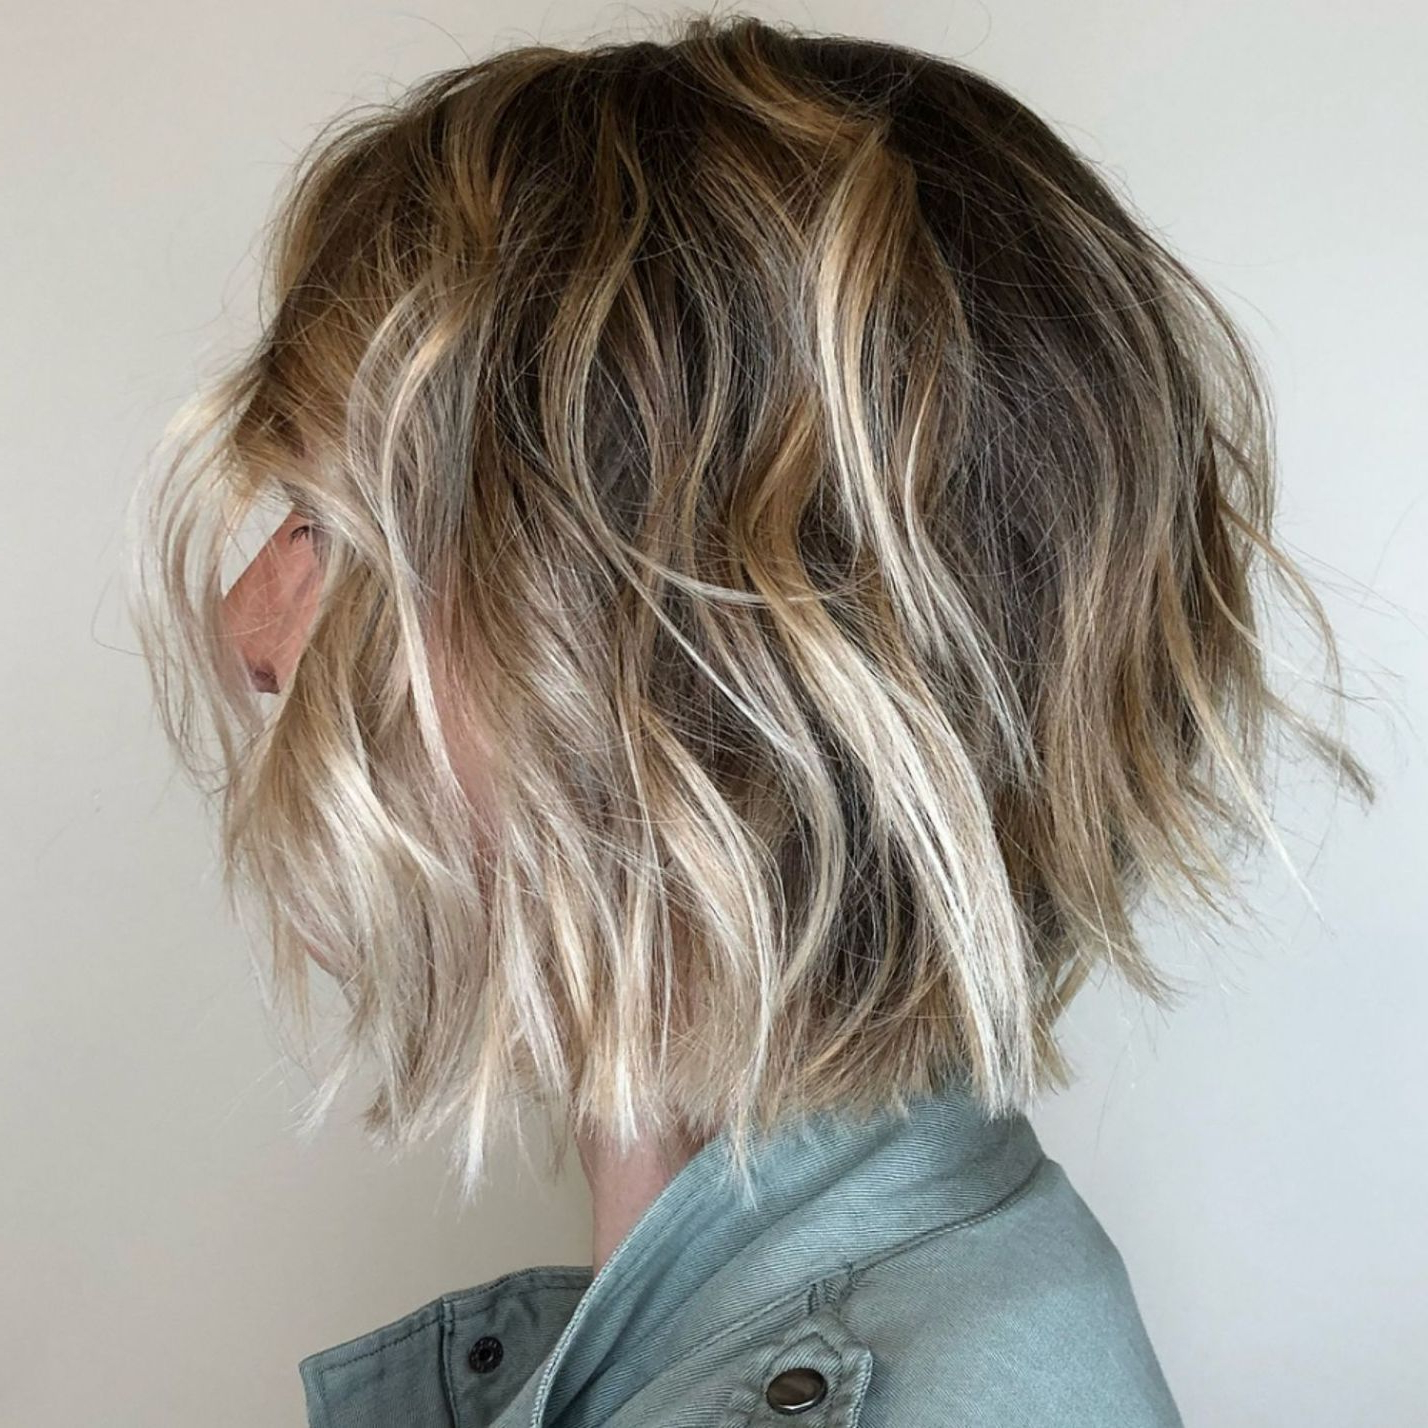 60 Short Shag Hairstyles That You Simply Can't Miss In 2019 Within Choppy Bob Hairstyles With Blonde Ends (View 9 of 20)